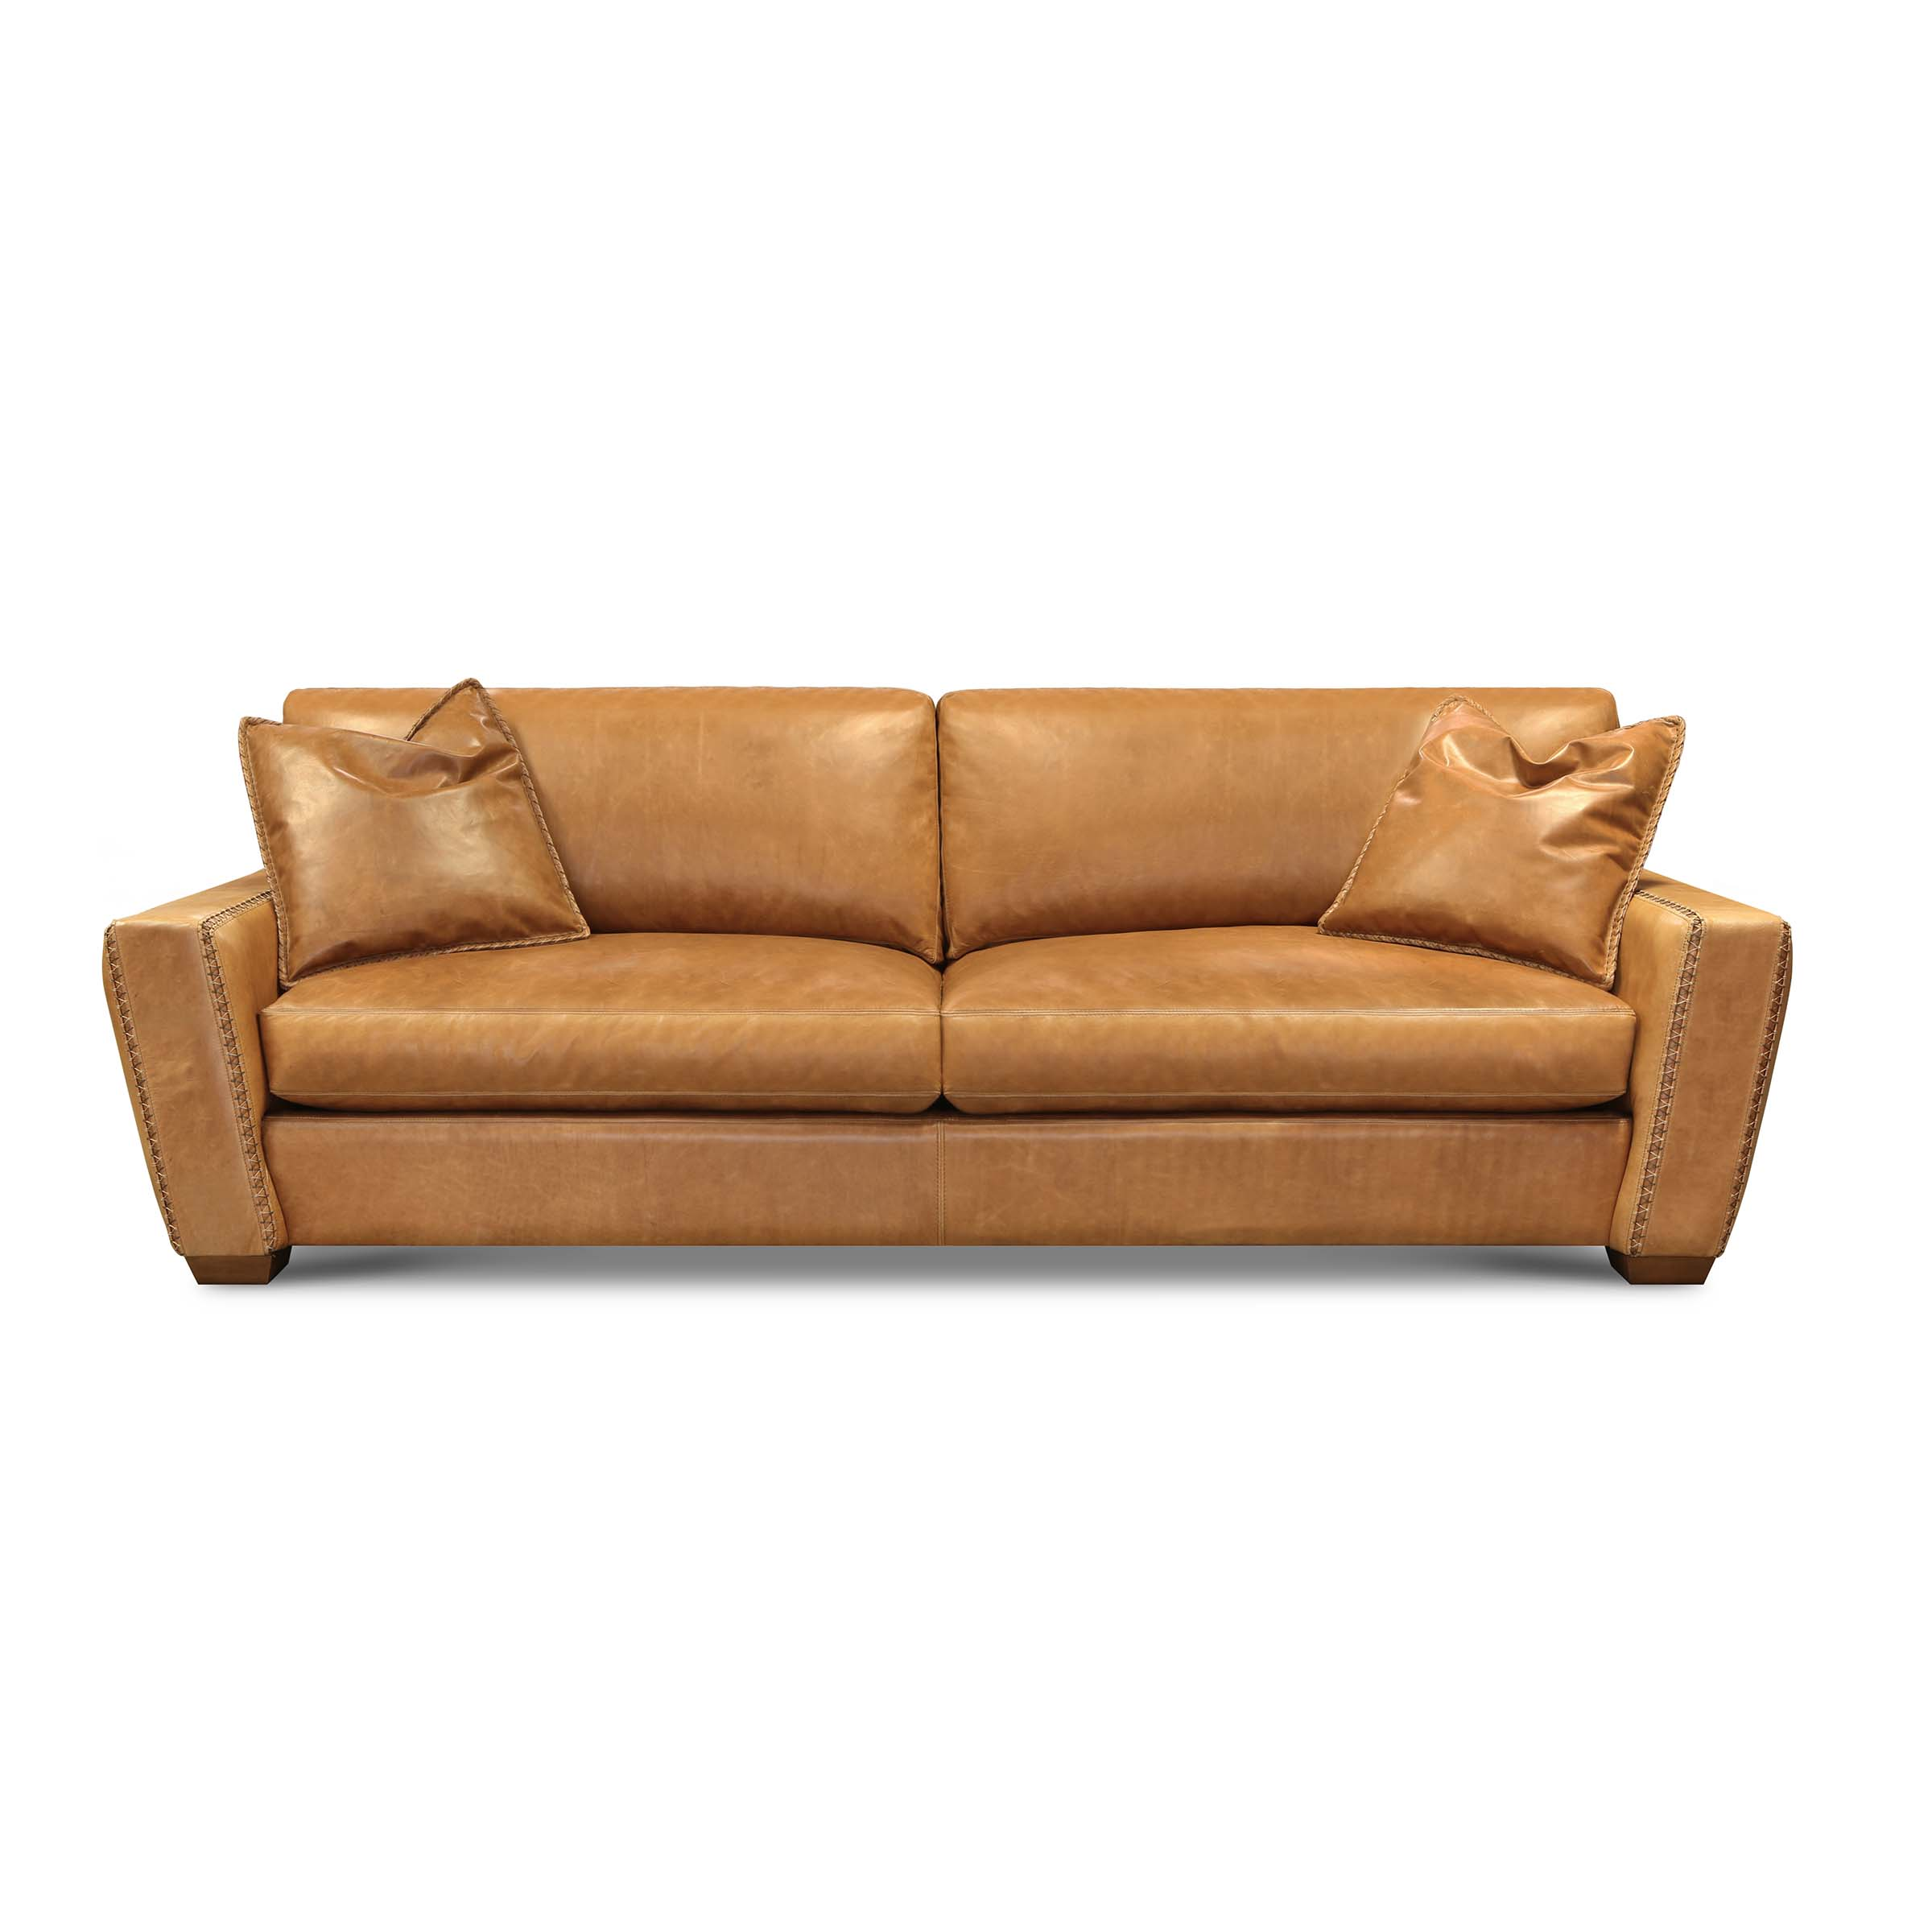 CITY COWBO - 30 Sofa Coachella Tan